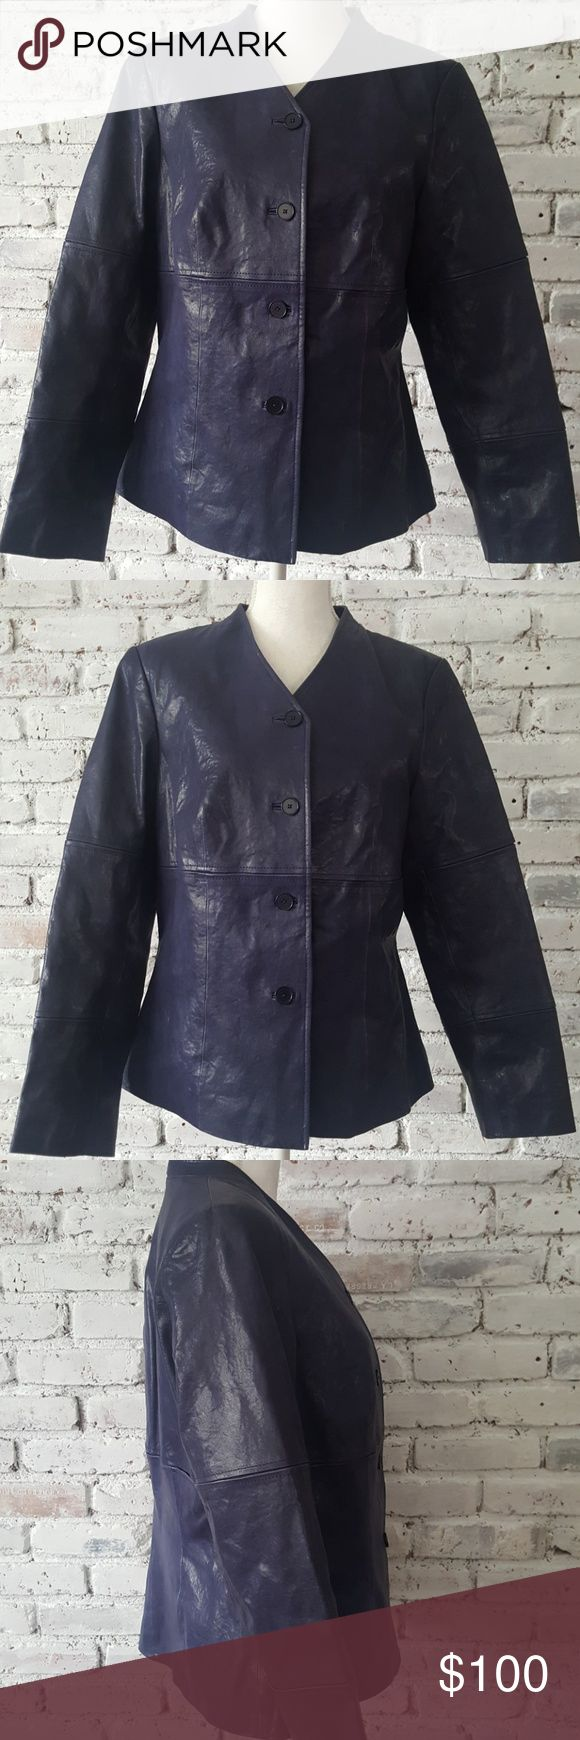 Don Caster Purple Leather Jacket sz 12 Purple lovers will love this jacket. In good condition ladies. Only minor small flaws to point out  pictured in last pic. Where measuring tape ends jacket had small belt loops on each side , in thin material that I cut out I didn't like it with the belt when I first purchased it.  U can barely see a trace that it was there but I'm pointing it out. Light scratch mark on upper right neck area. Very stylish, unique looking purple leather jacket.  Shop with…